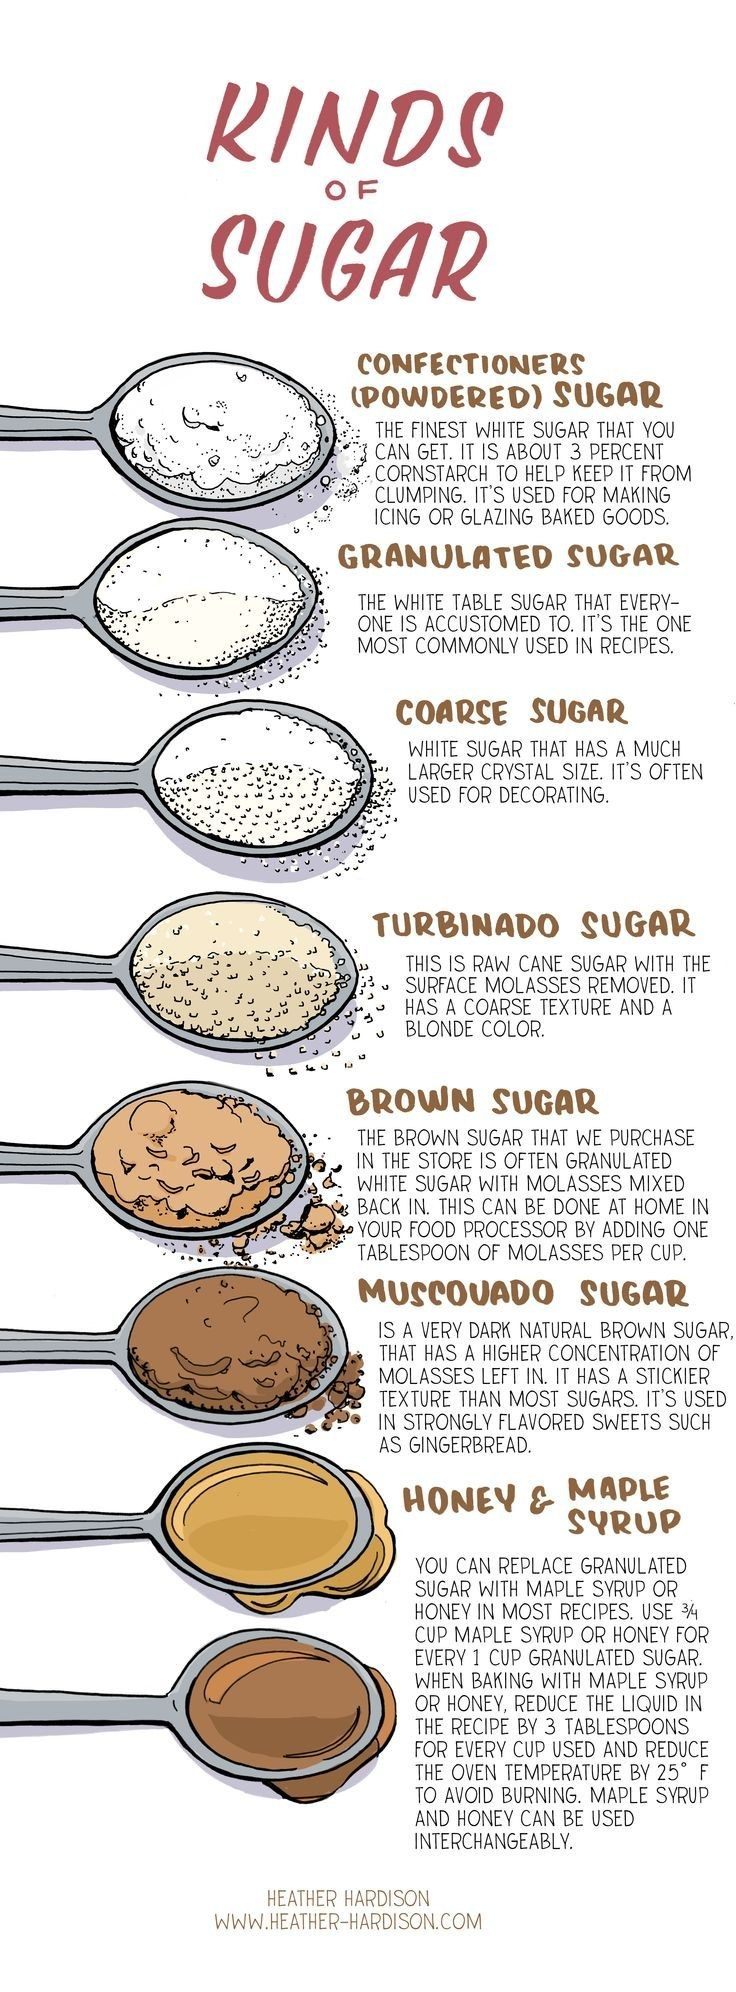 And everything there is to know about sugar: